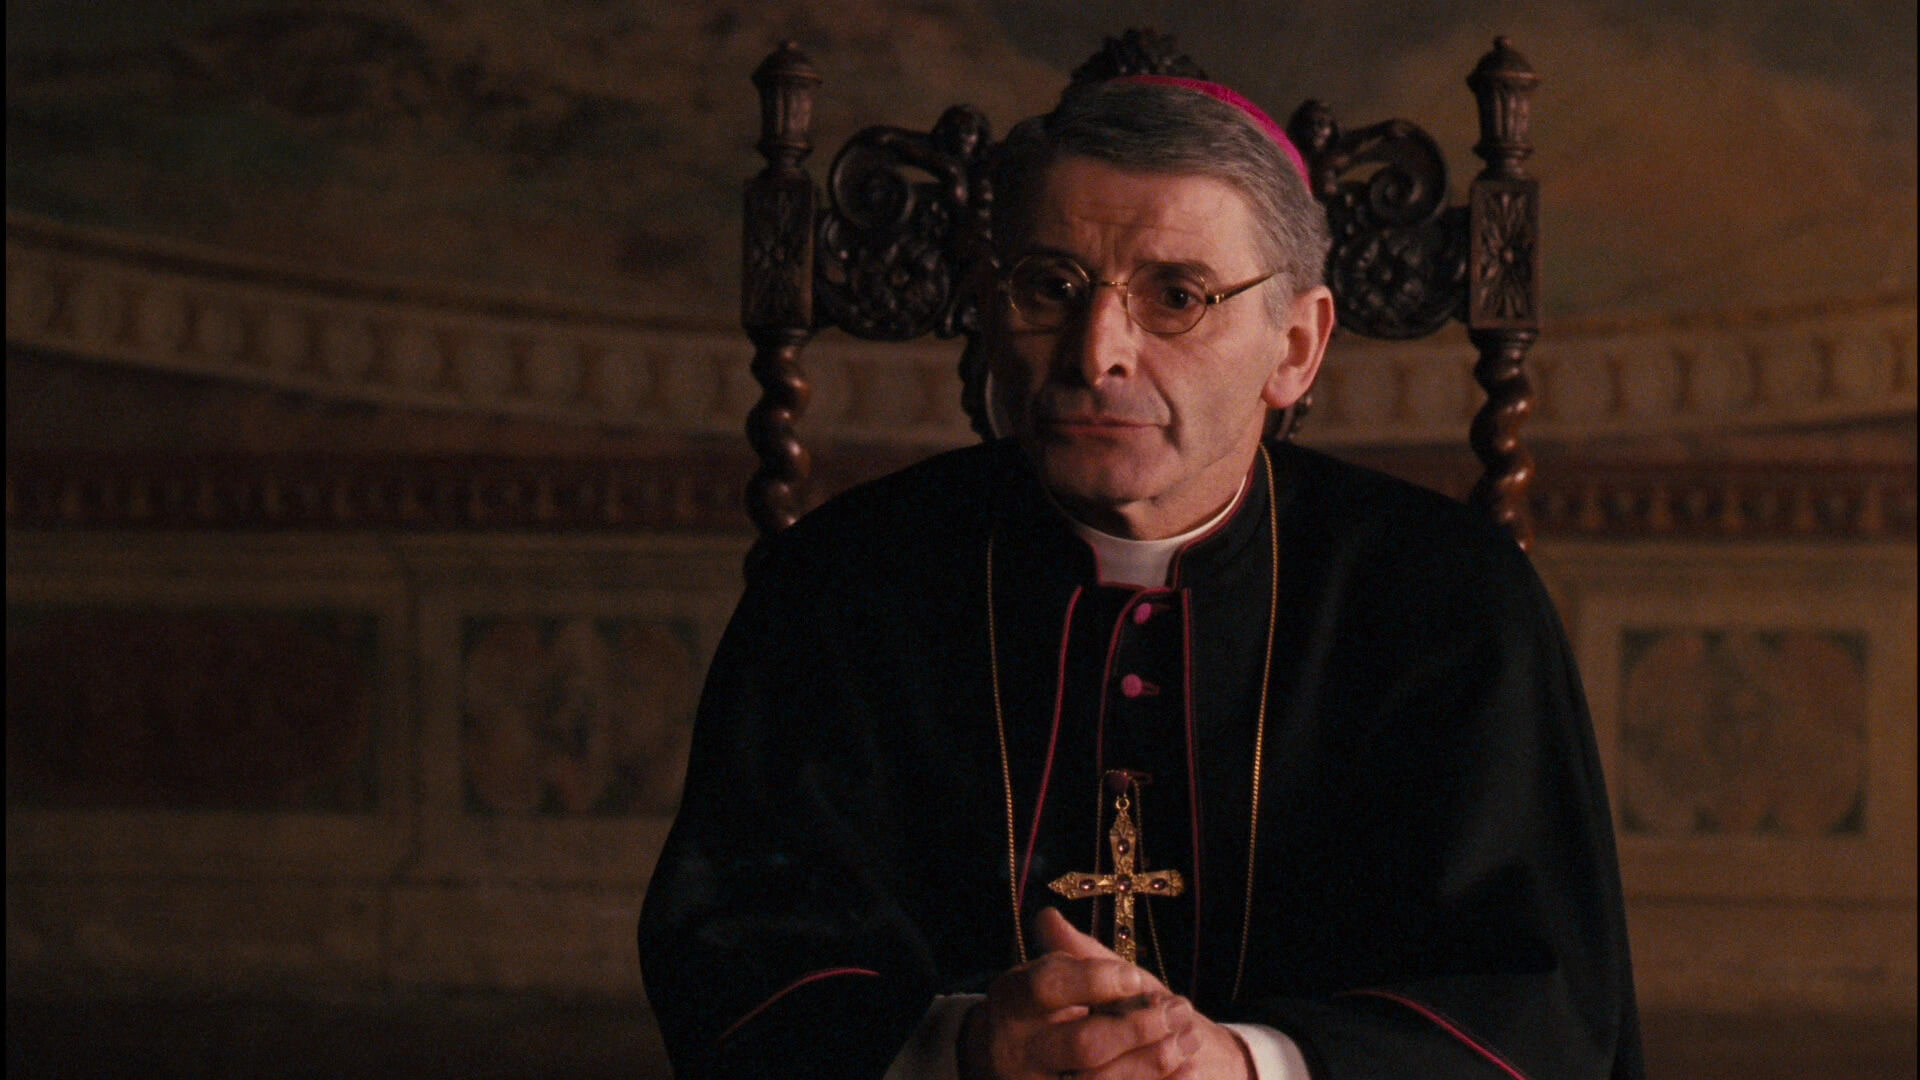 The Godfather Coda Begins with a Meeting with the Archbishop